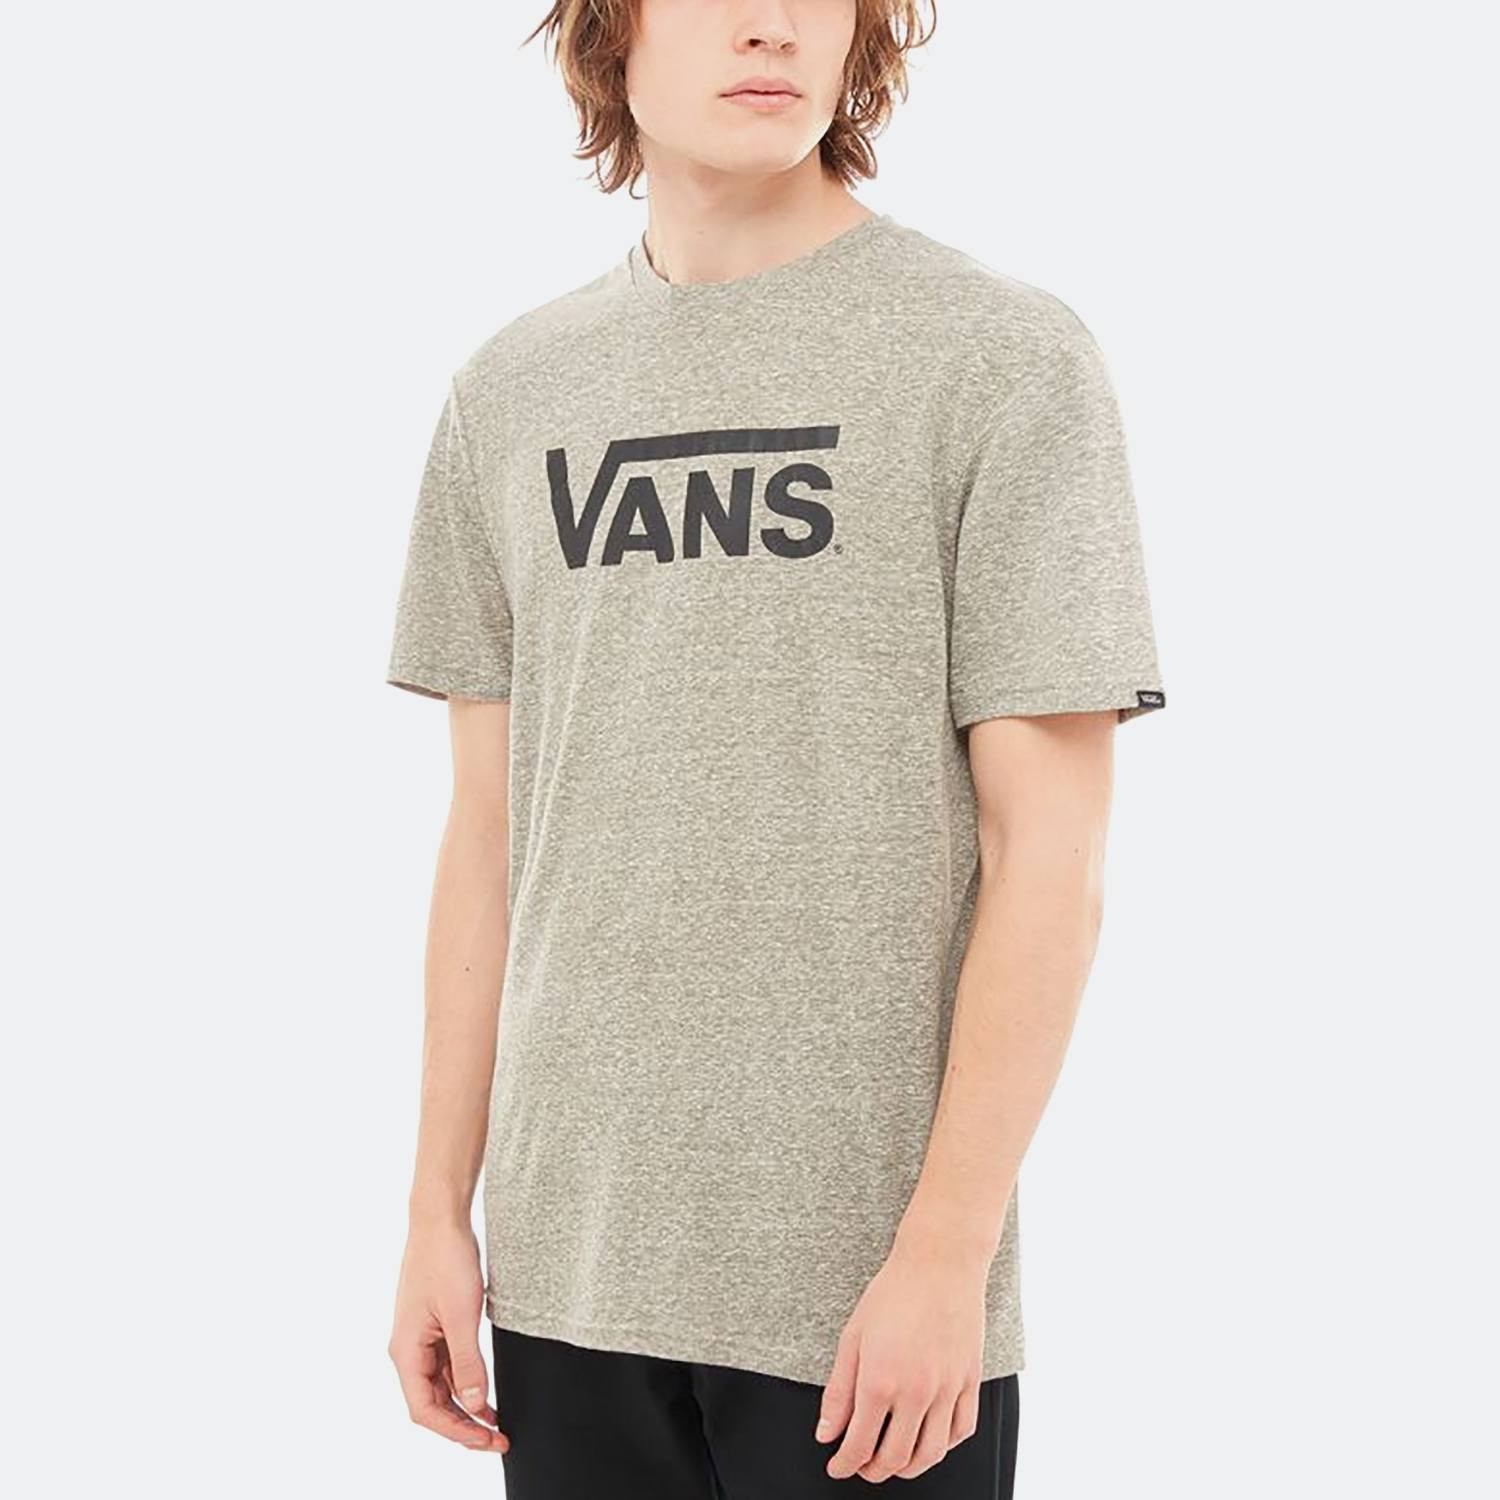 Vans Classic Heather Short Sleeve T-shirt (9000017622_35588)